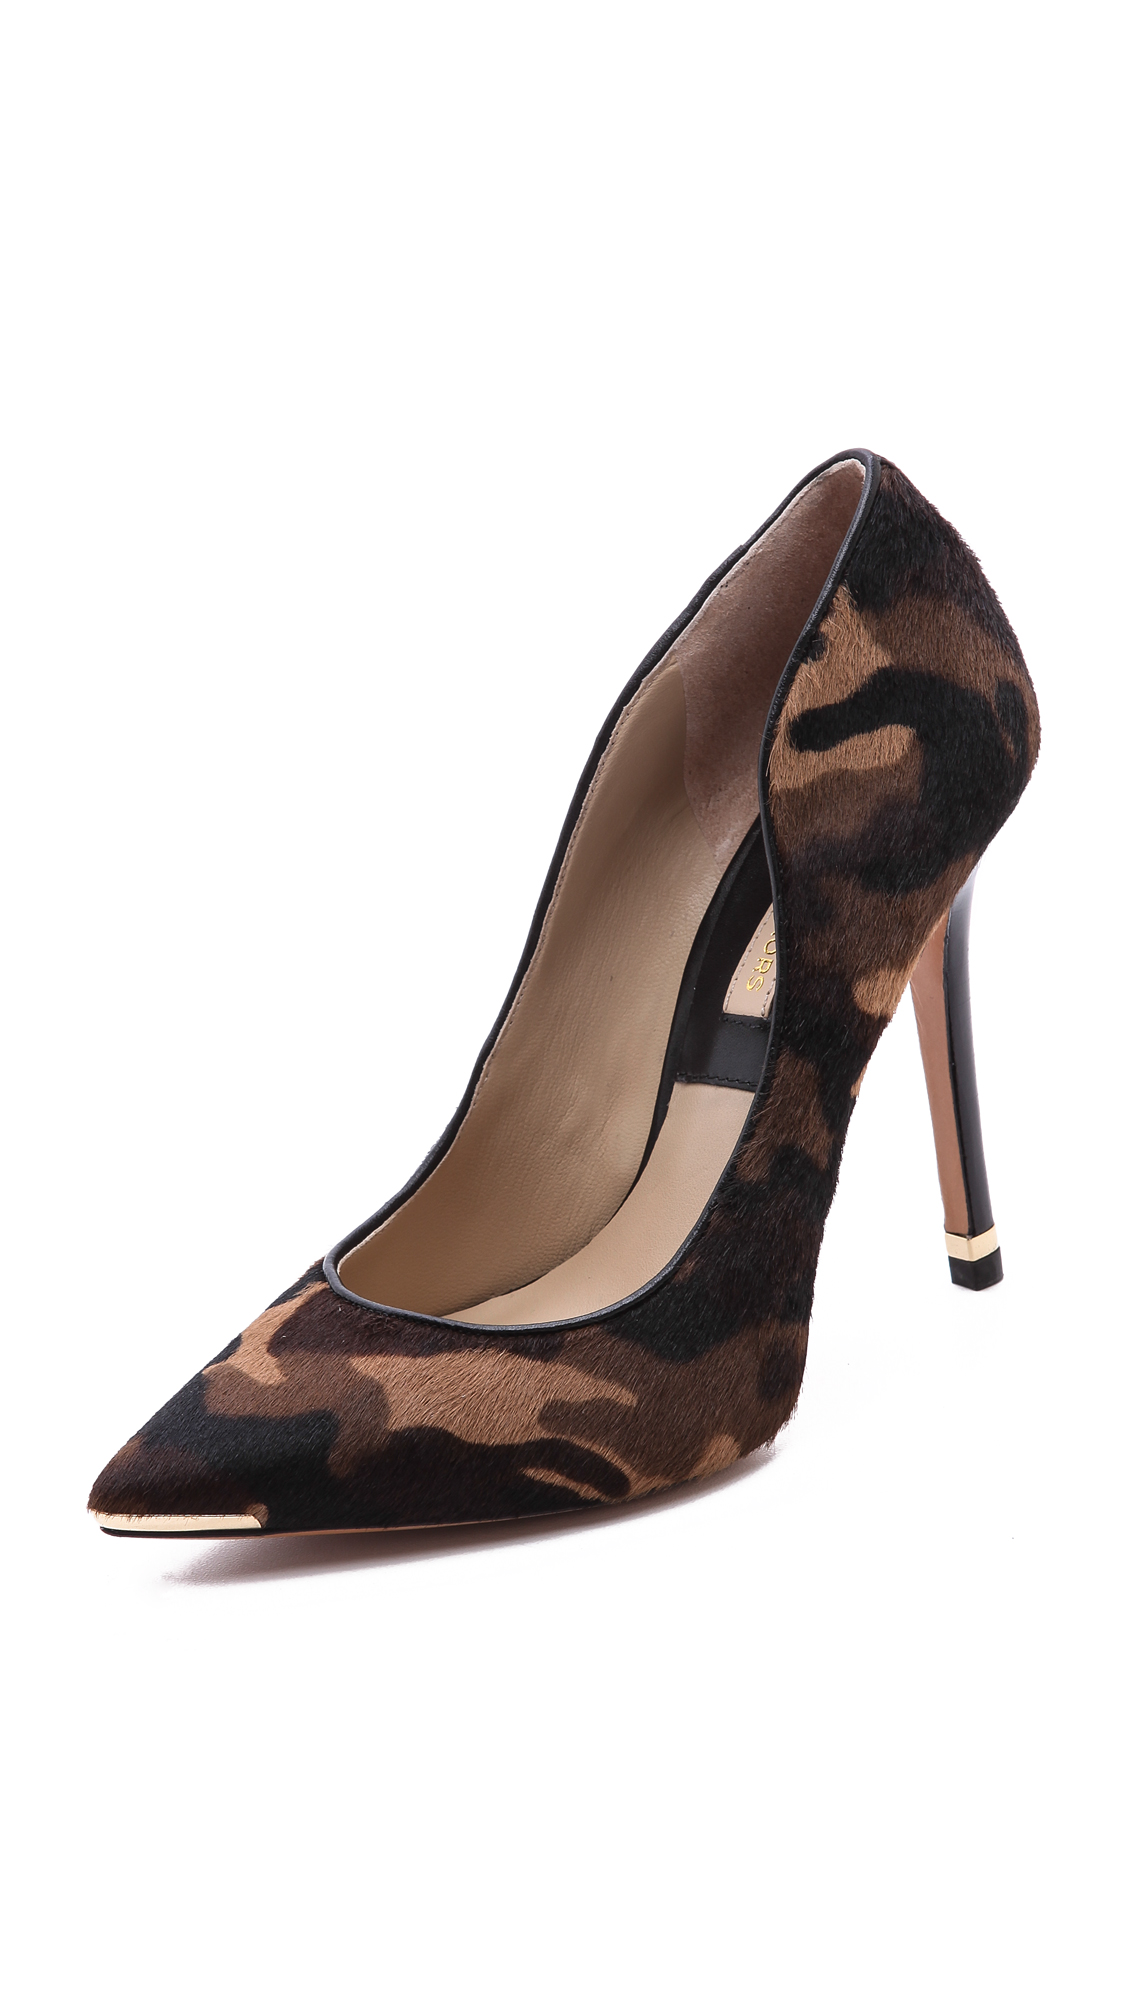 db689f07d2e Buy michael kors camouflage shoes   OFF55% Discounted